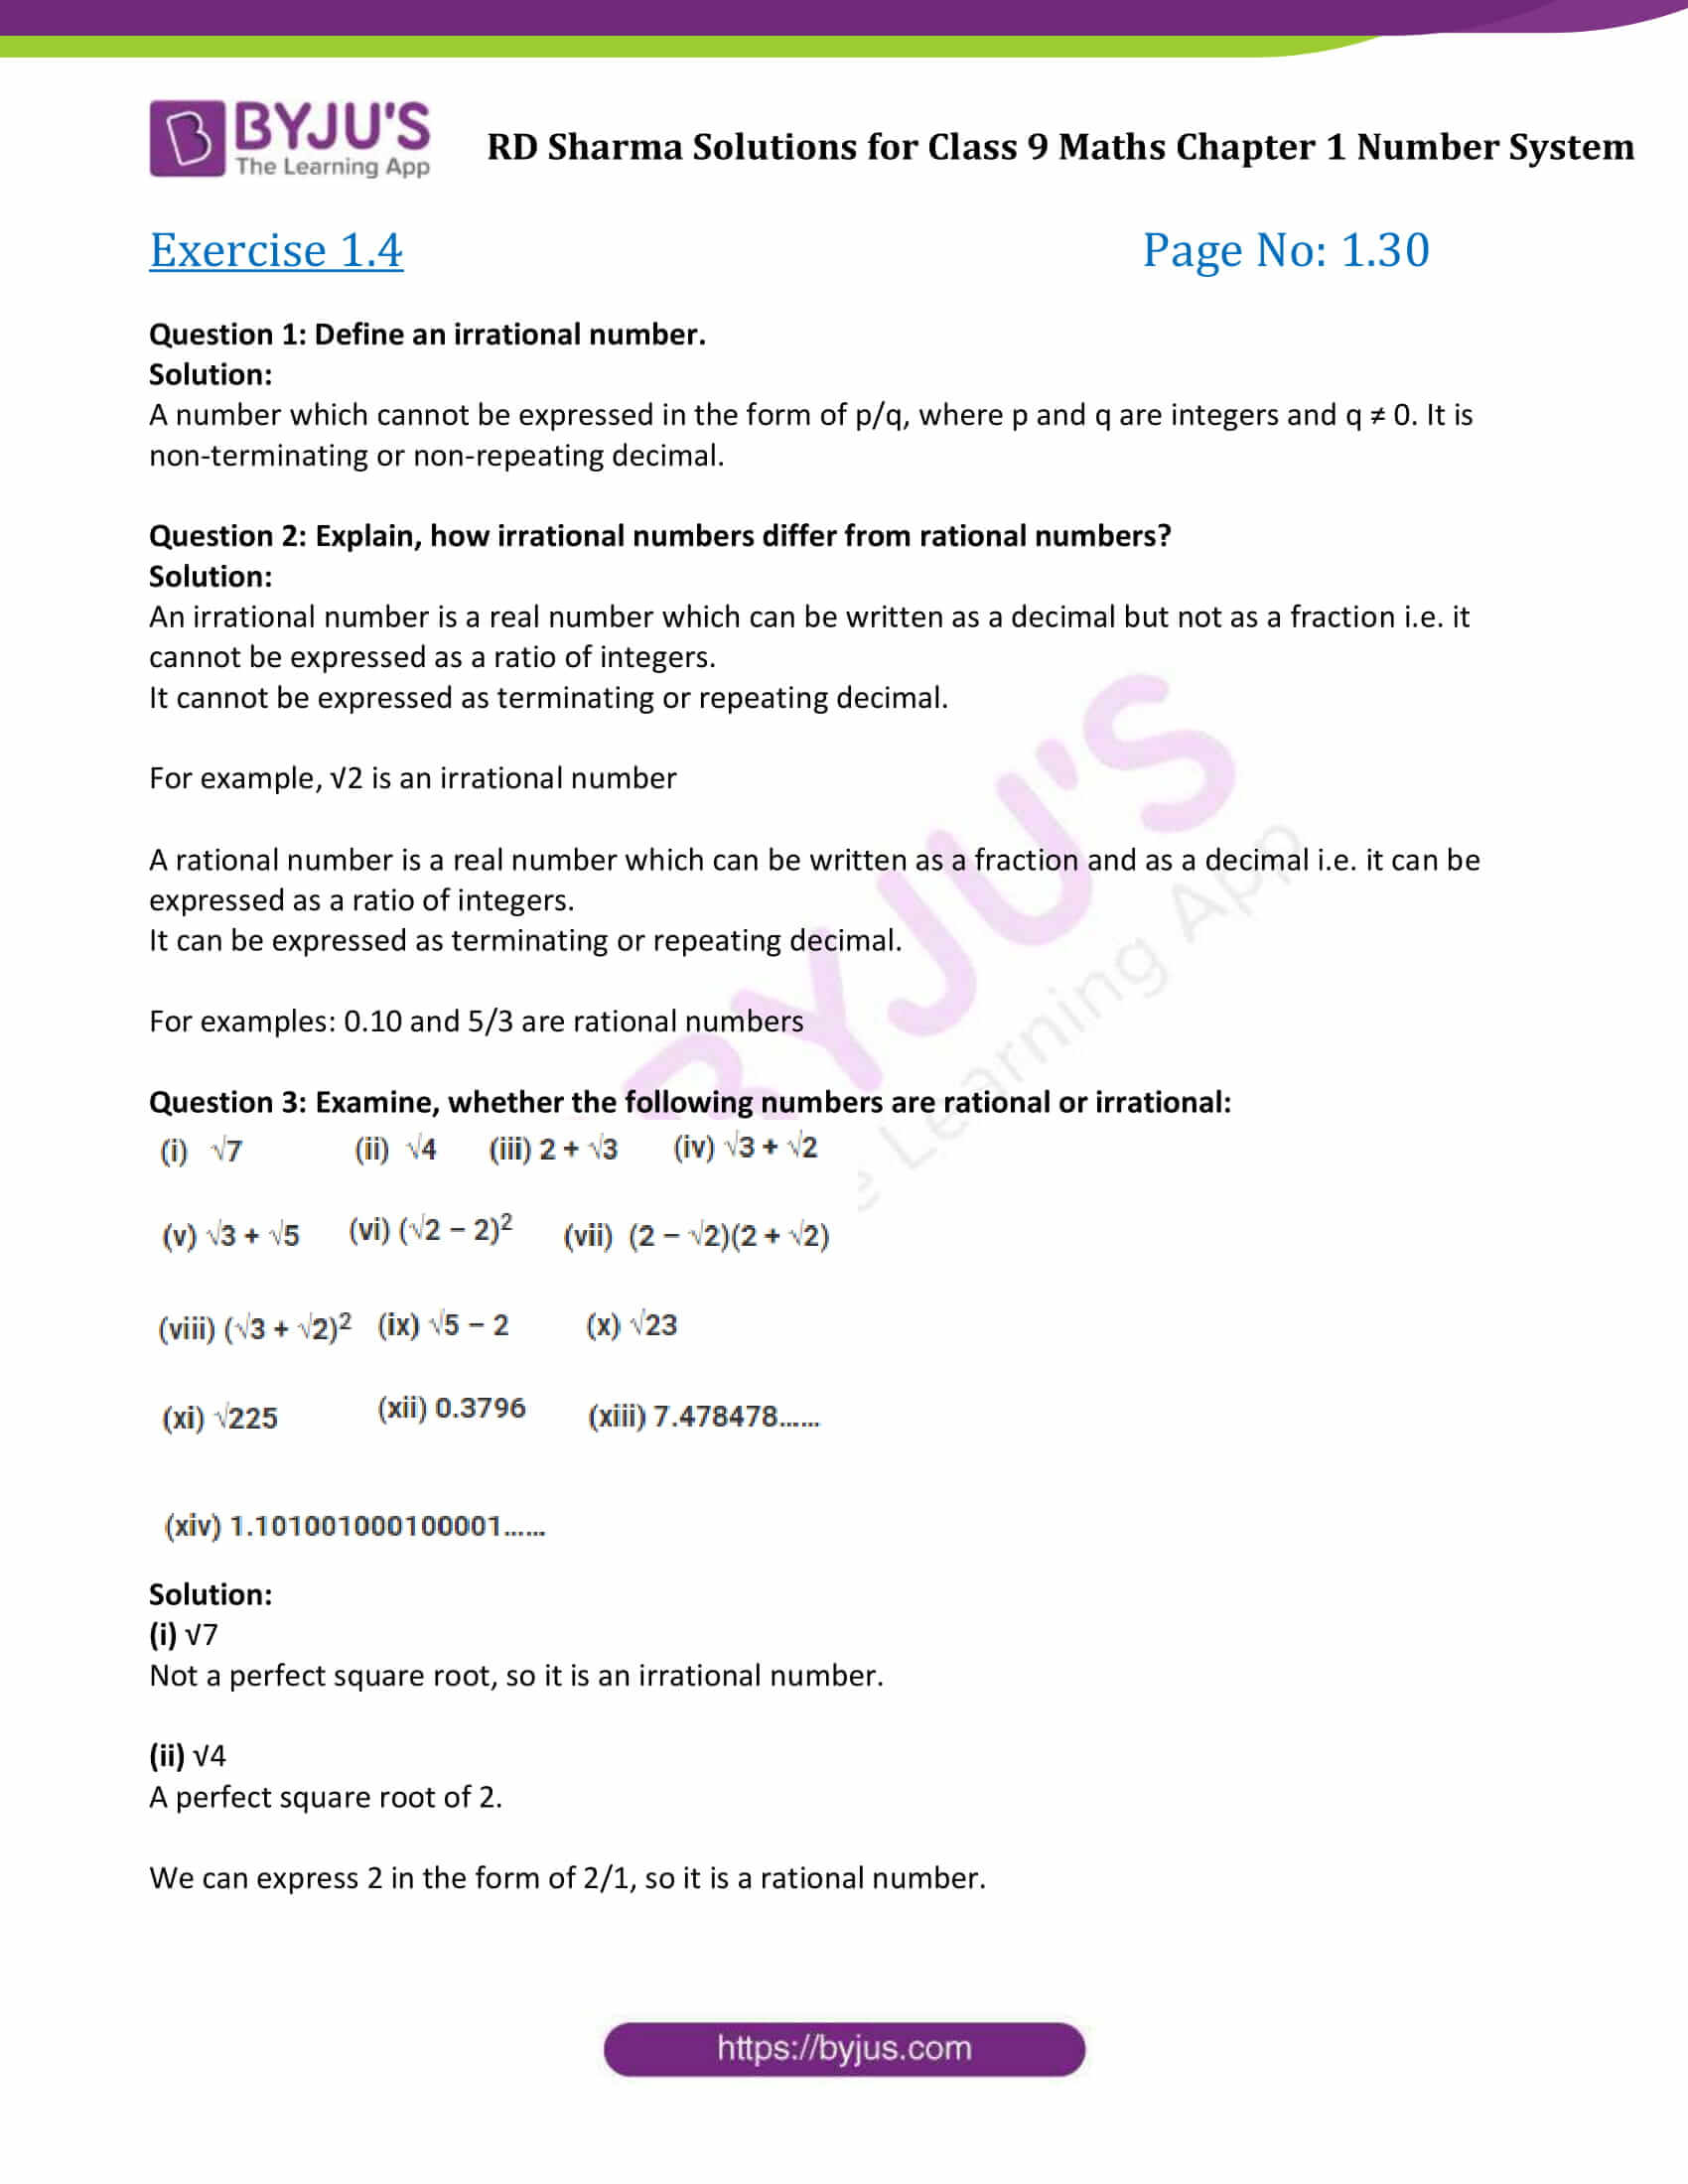 RD Sharma Solution class 9 Maths Chapter 1 Number System 13